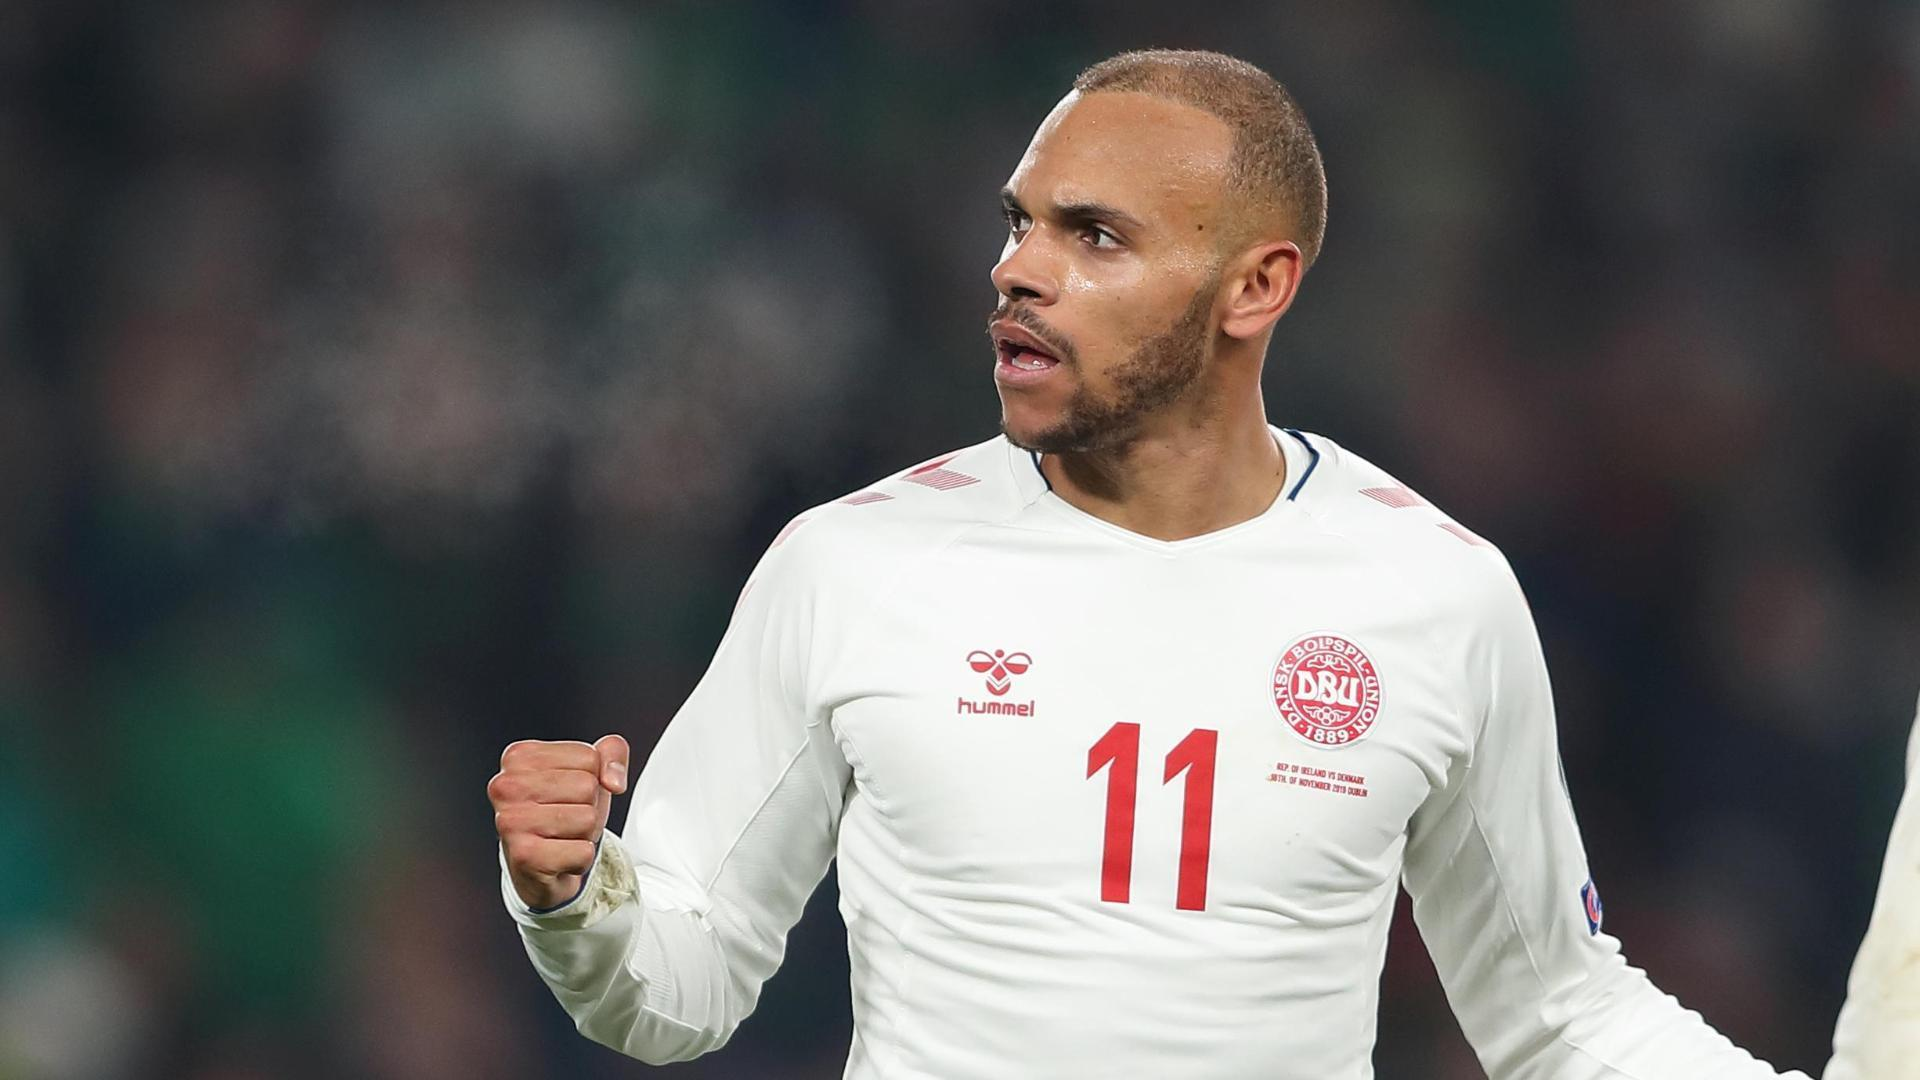 Denmark survive scare to qualify for Euro 2020